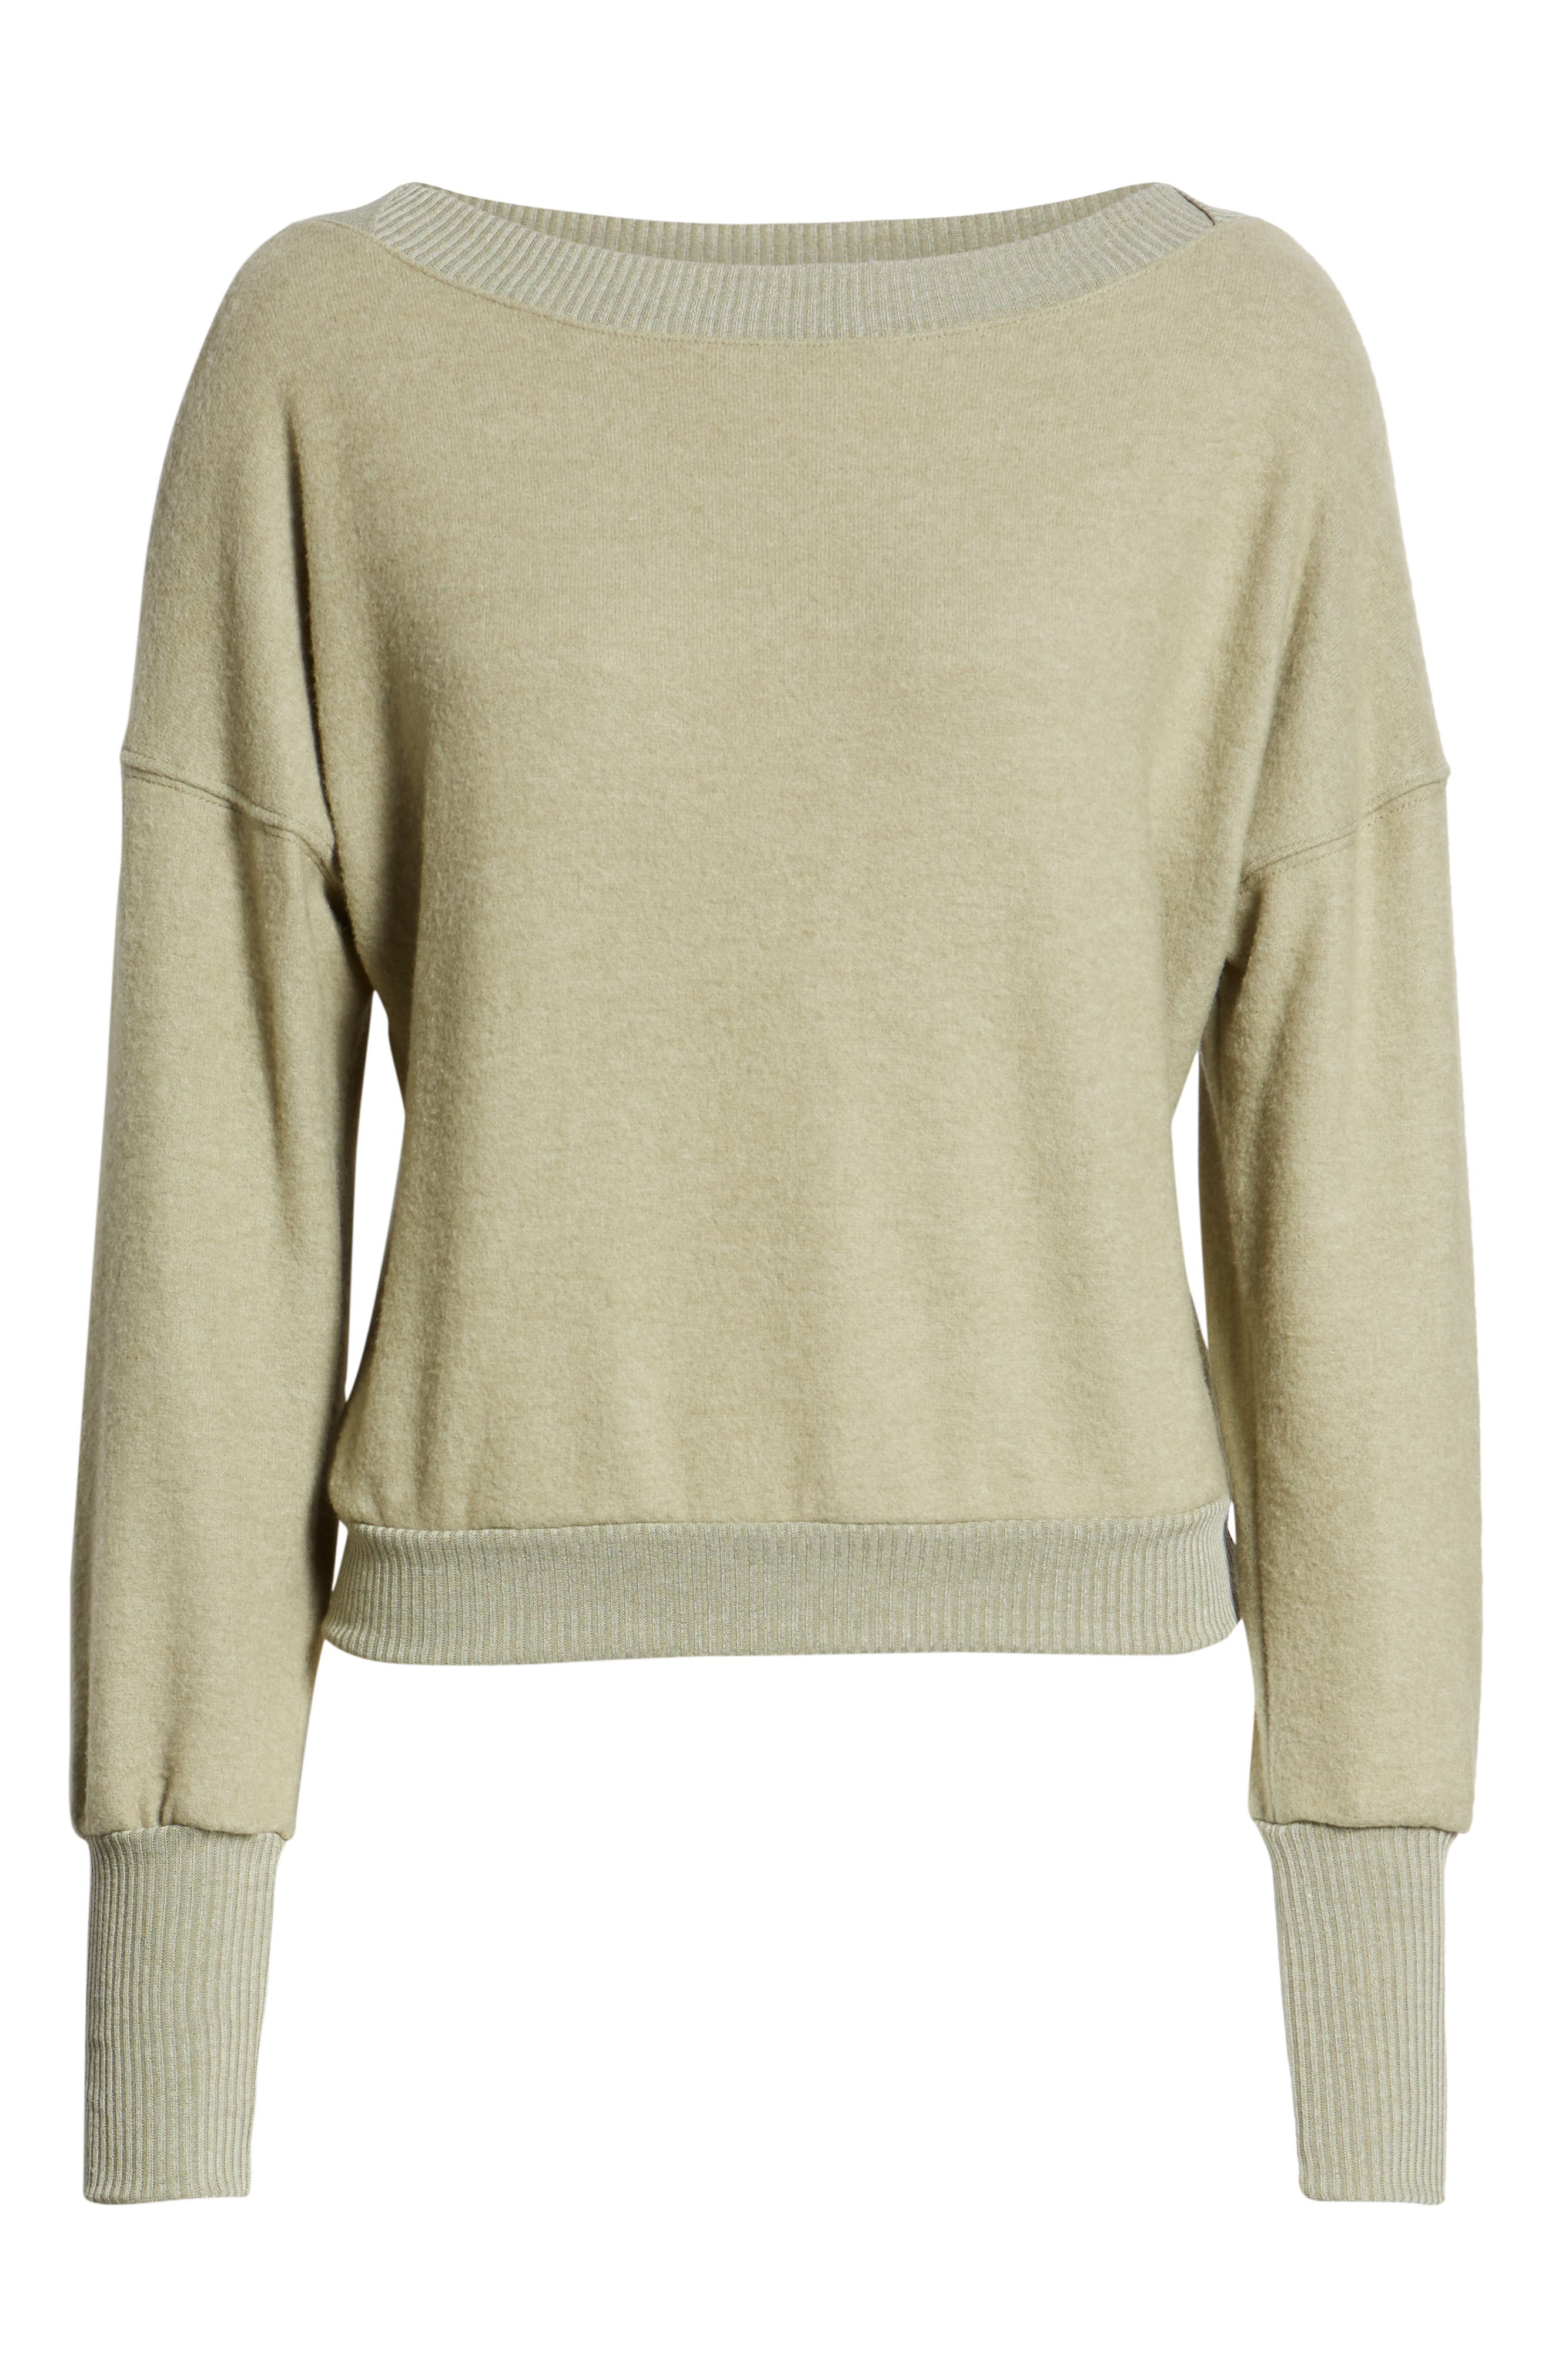 Darwin Cozy Sweatshirt,                             Alternate thumbnail 6, color,                             CAPERS